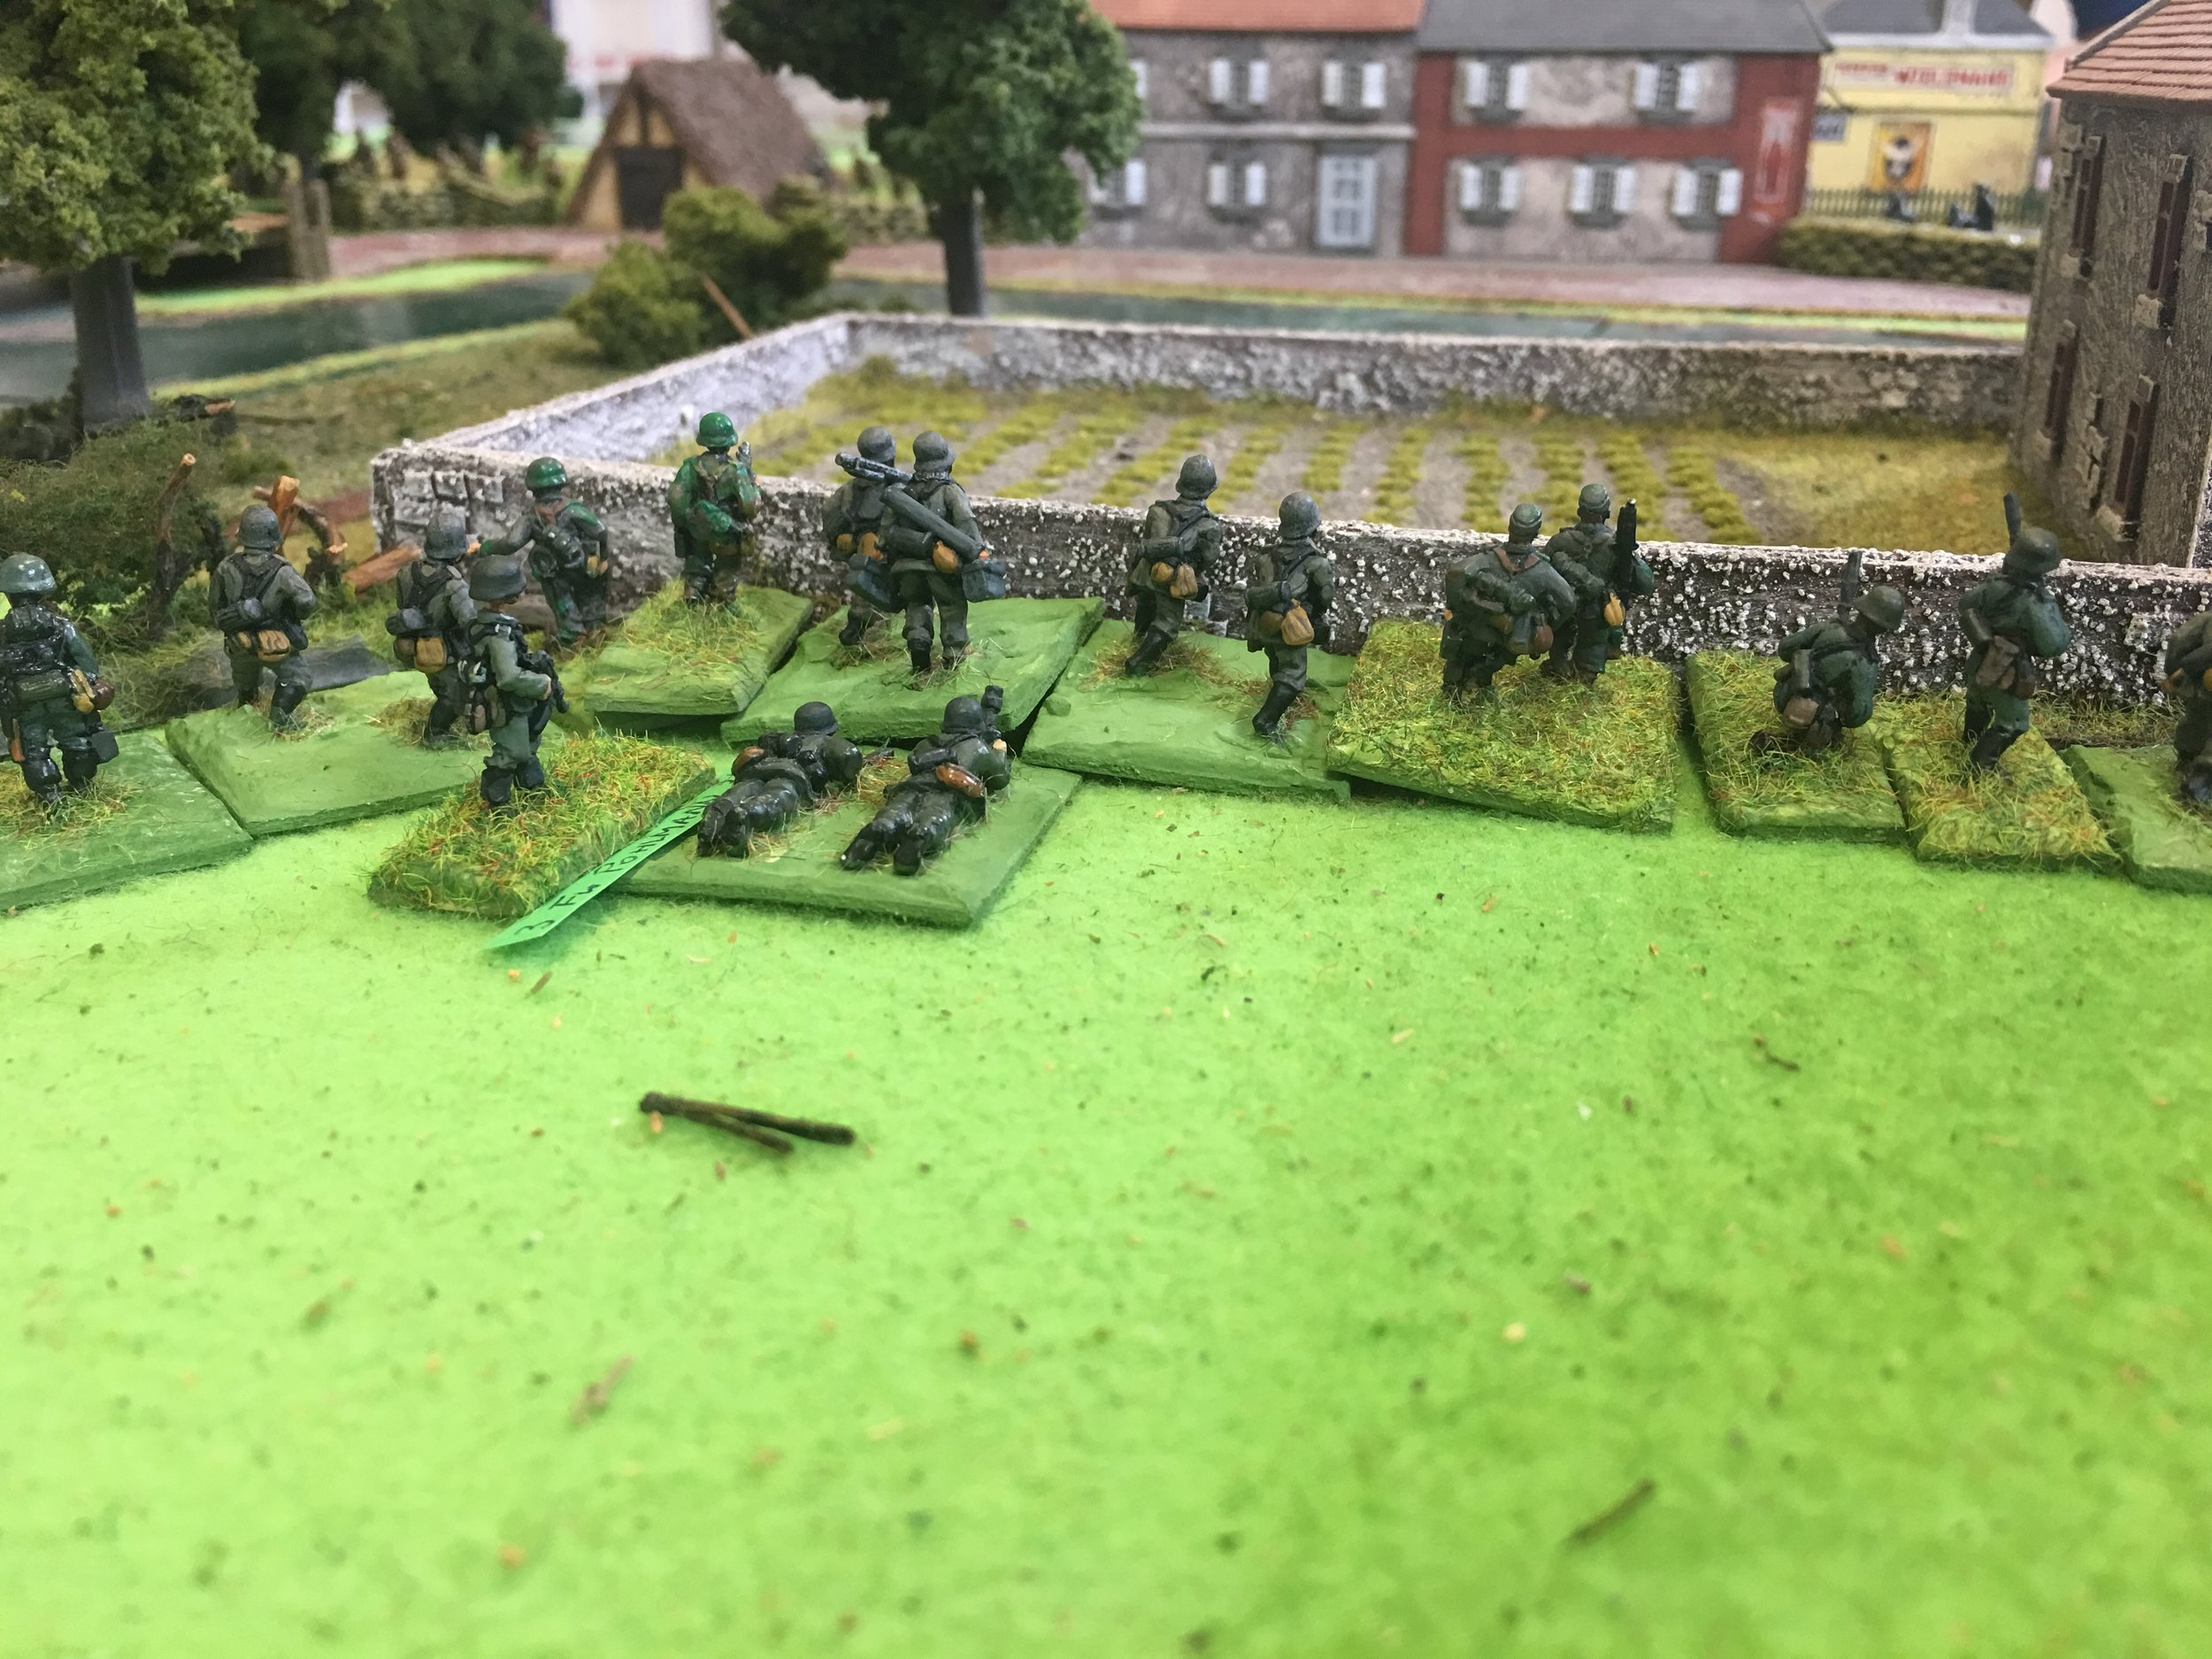 The Germans reach the outskirts of Pevensy, but have to cross the river